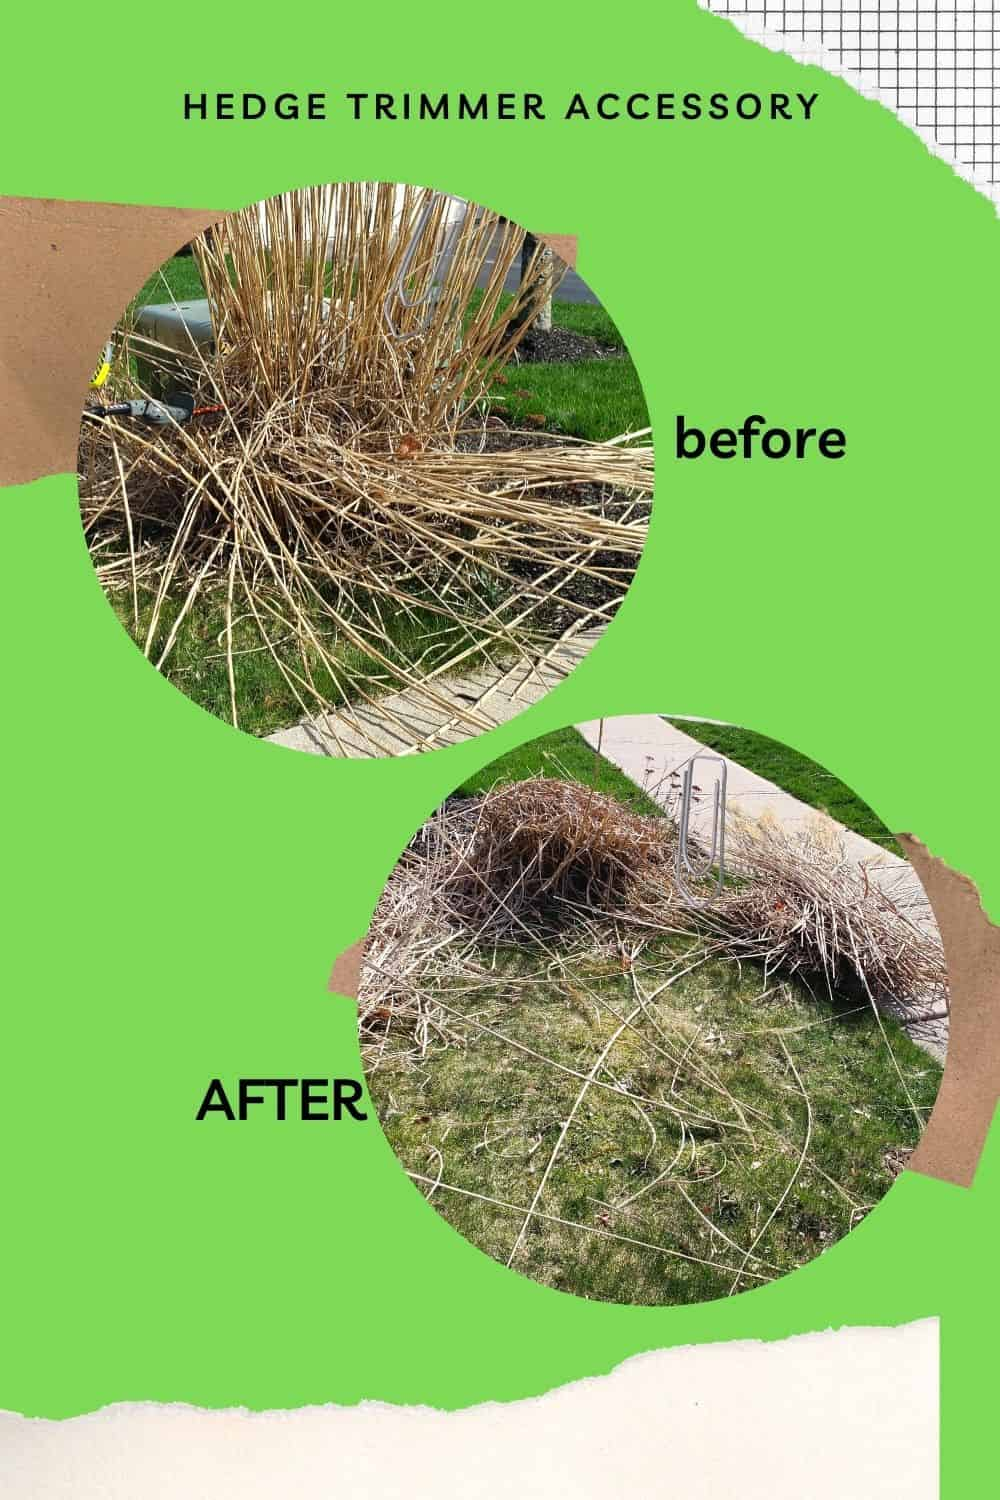 BEFORE AND AFTER hedge trimmer